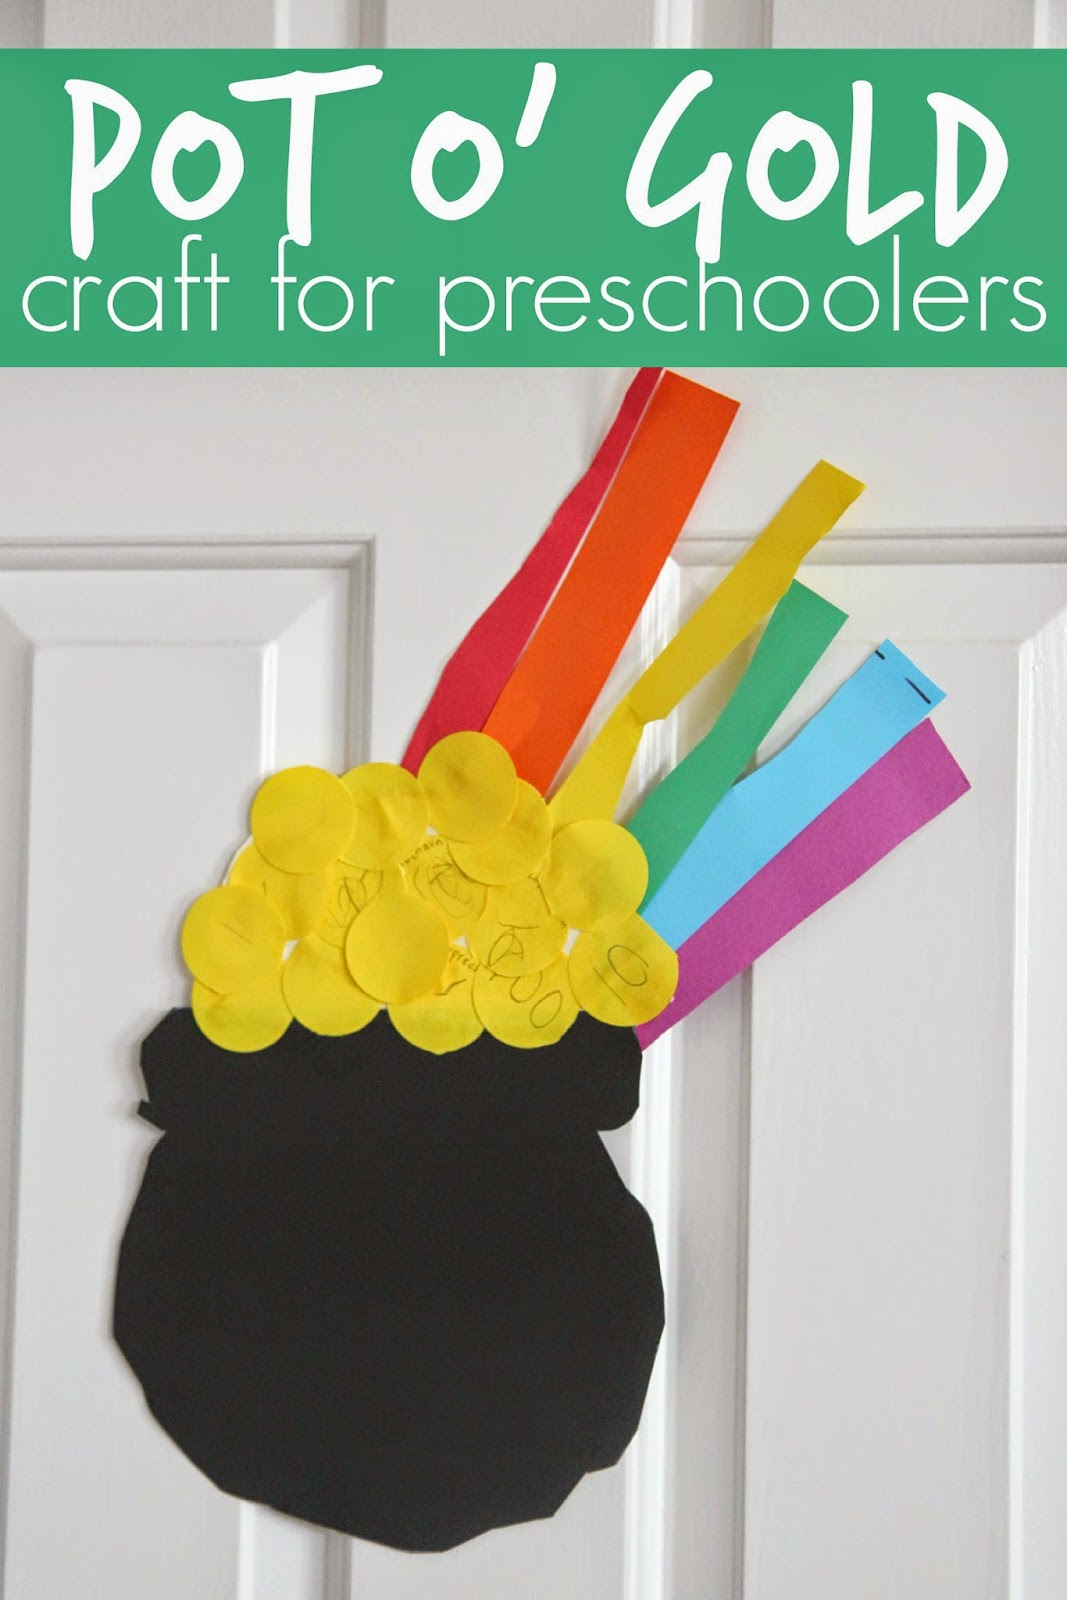 Kindness crafts for preschoolers - We Used Scissors And A Craft Punch For This Activity Since My Daughter Loves Using Both When She Is Creating